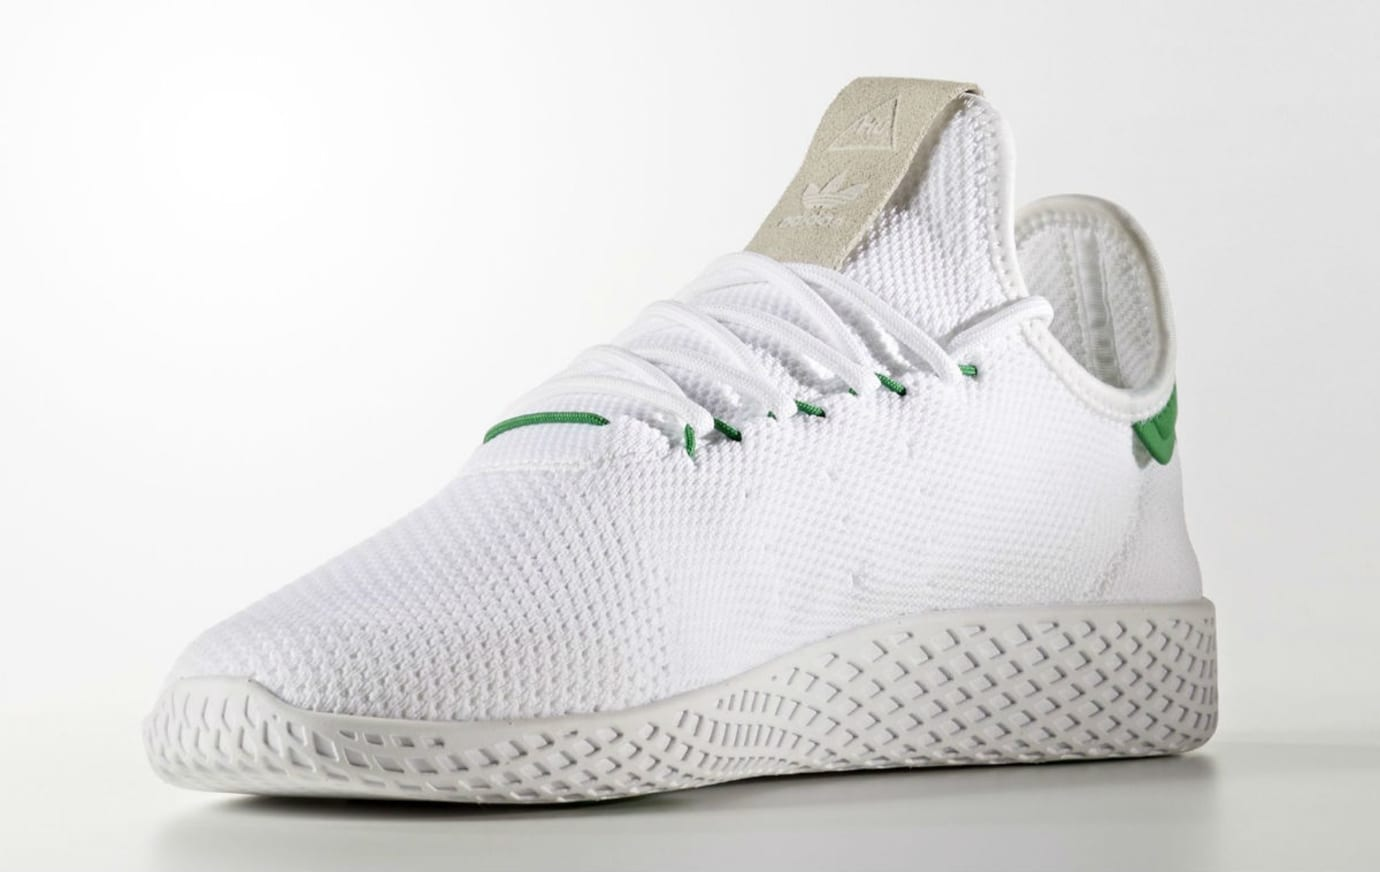 check out 0ccb6 730dc Pharrell x Adidas Tennis Hu White Green Release Date BA7828 ...